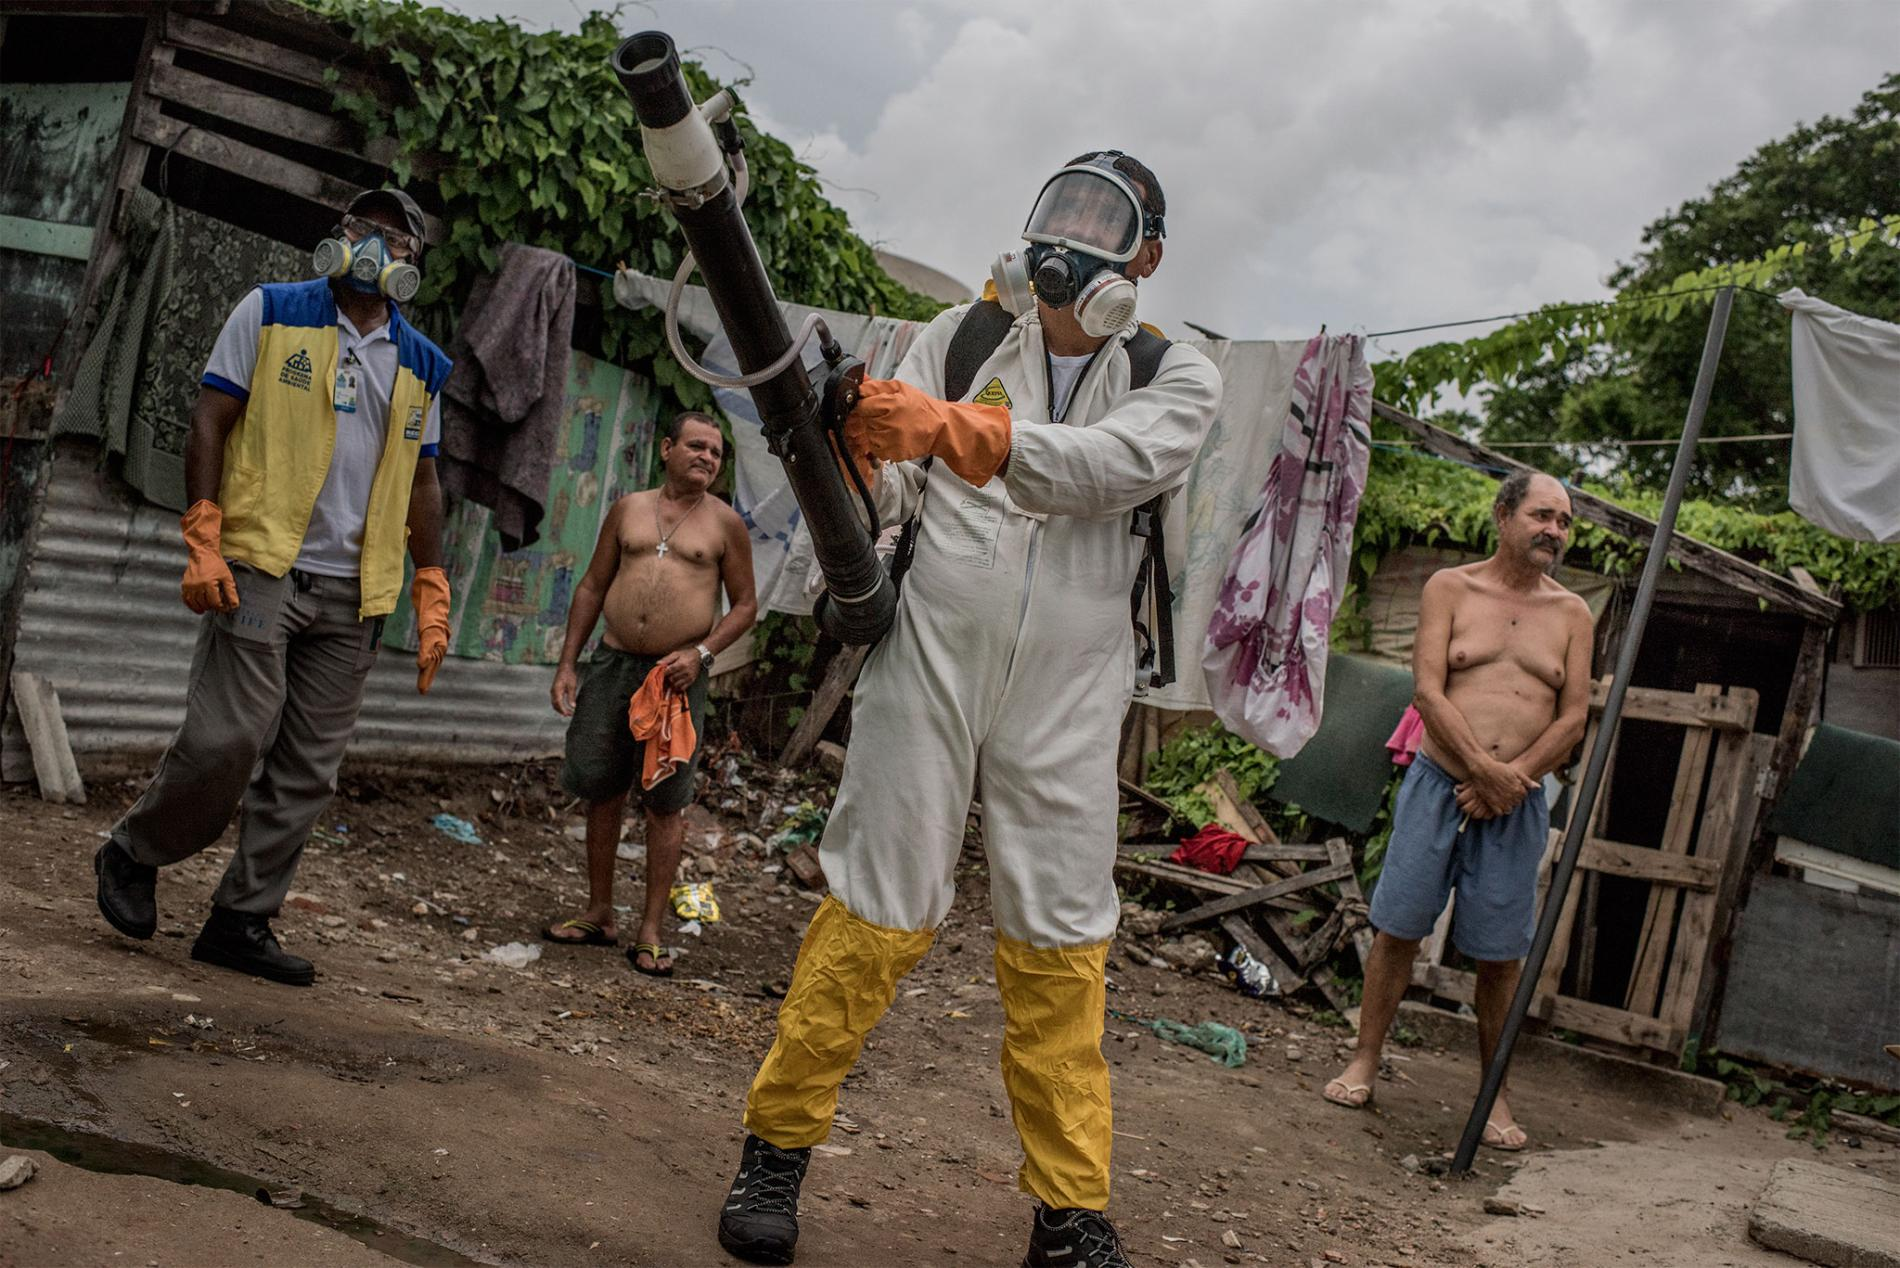 A health worker fumigates a poor favela, or slum, in the city of Recife, Brazil. Fumigating is one of the government's efforts to prevent the spread of Zika.